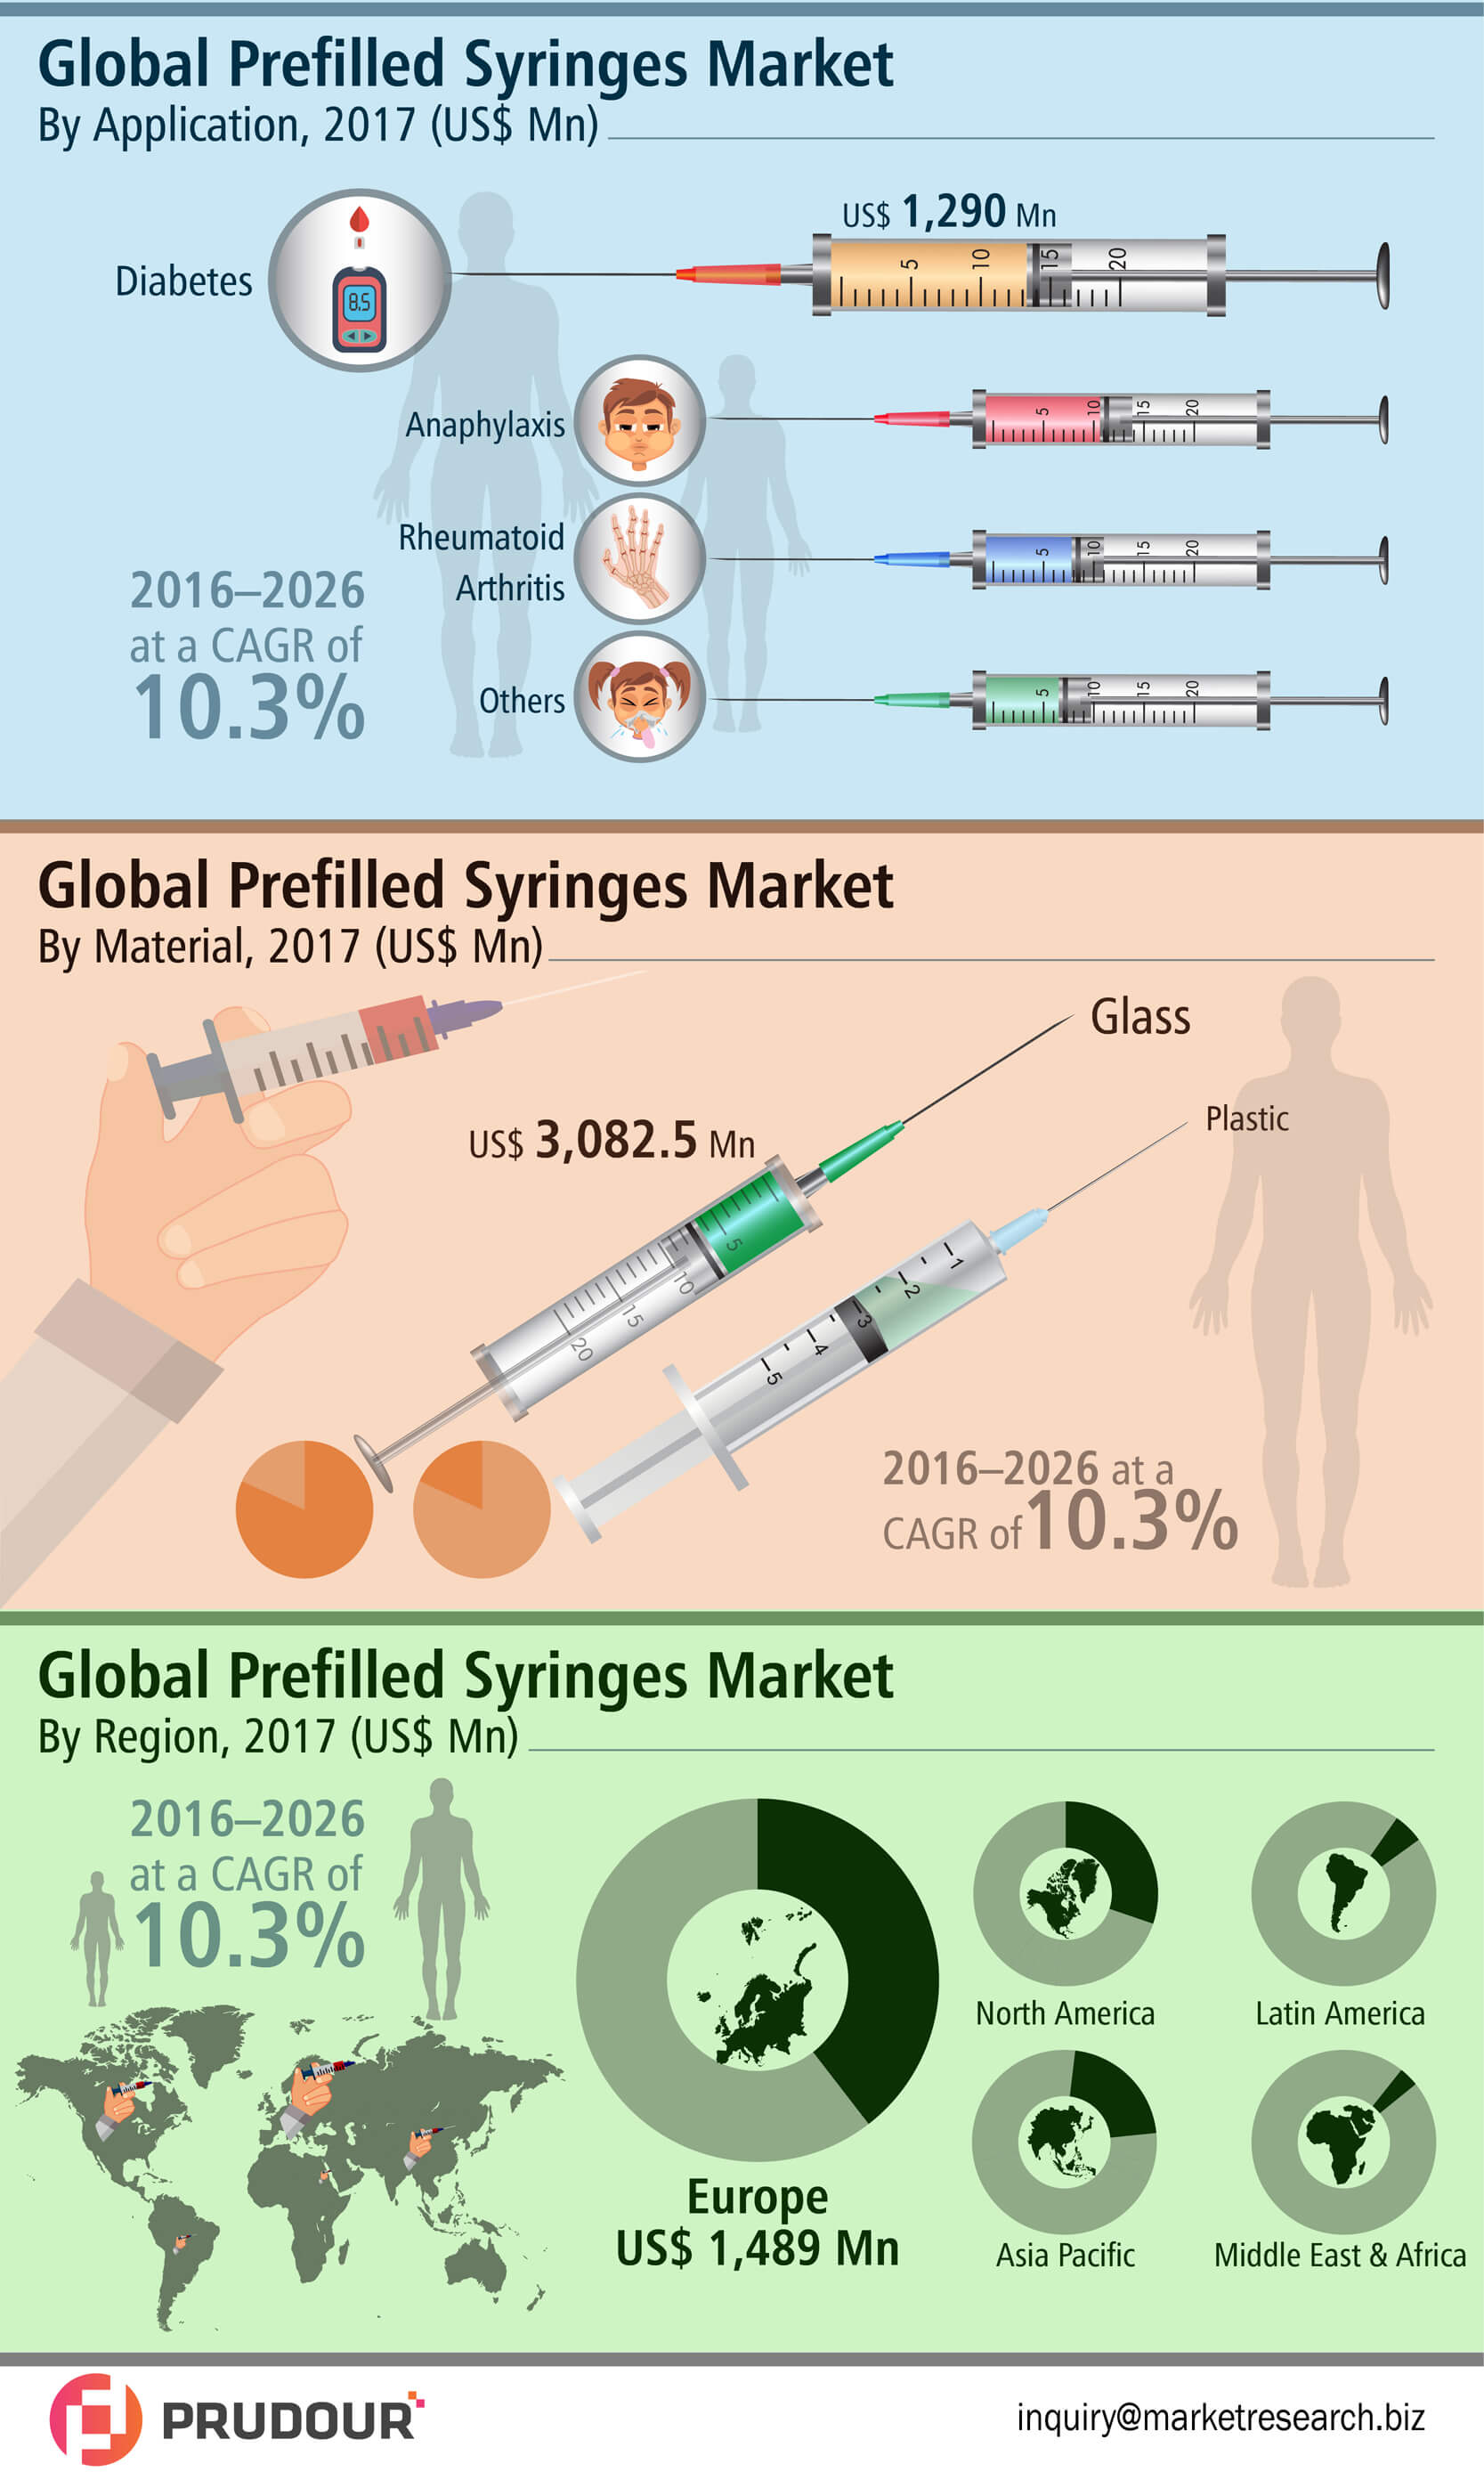 Global-Prefilled-Syringes-Market-infographic-plaza